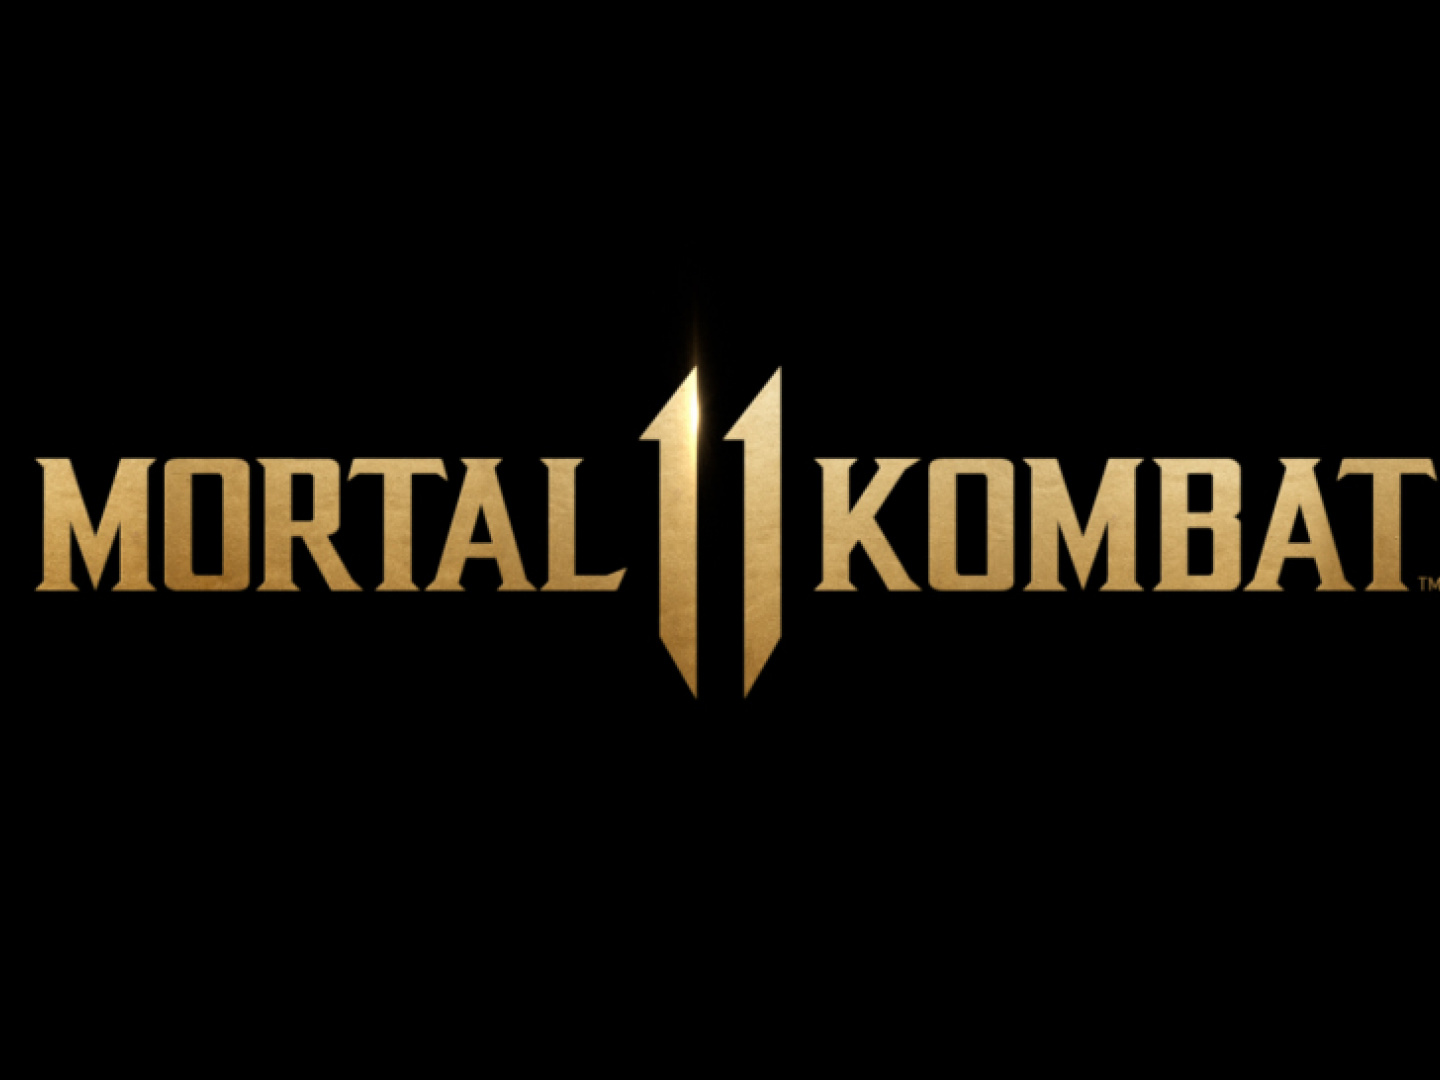 Mortal Kombat 11 Visual Identity Thumbnail